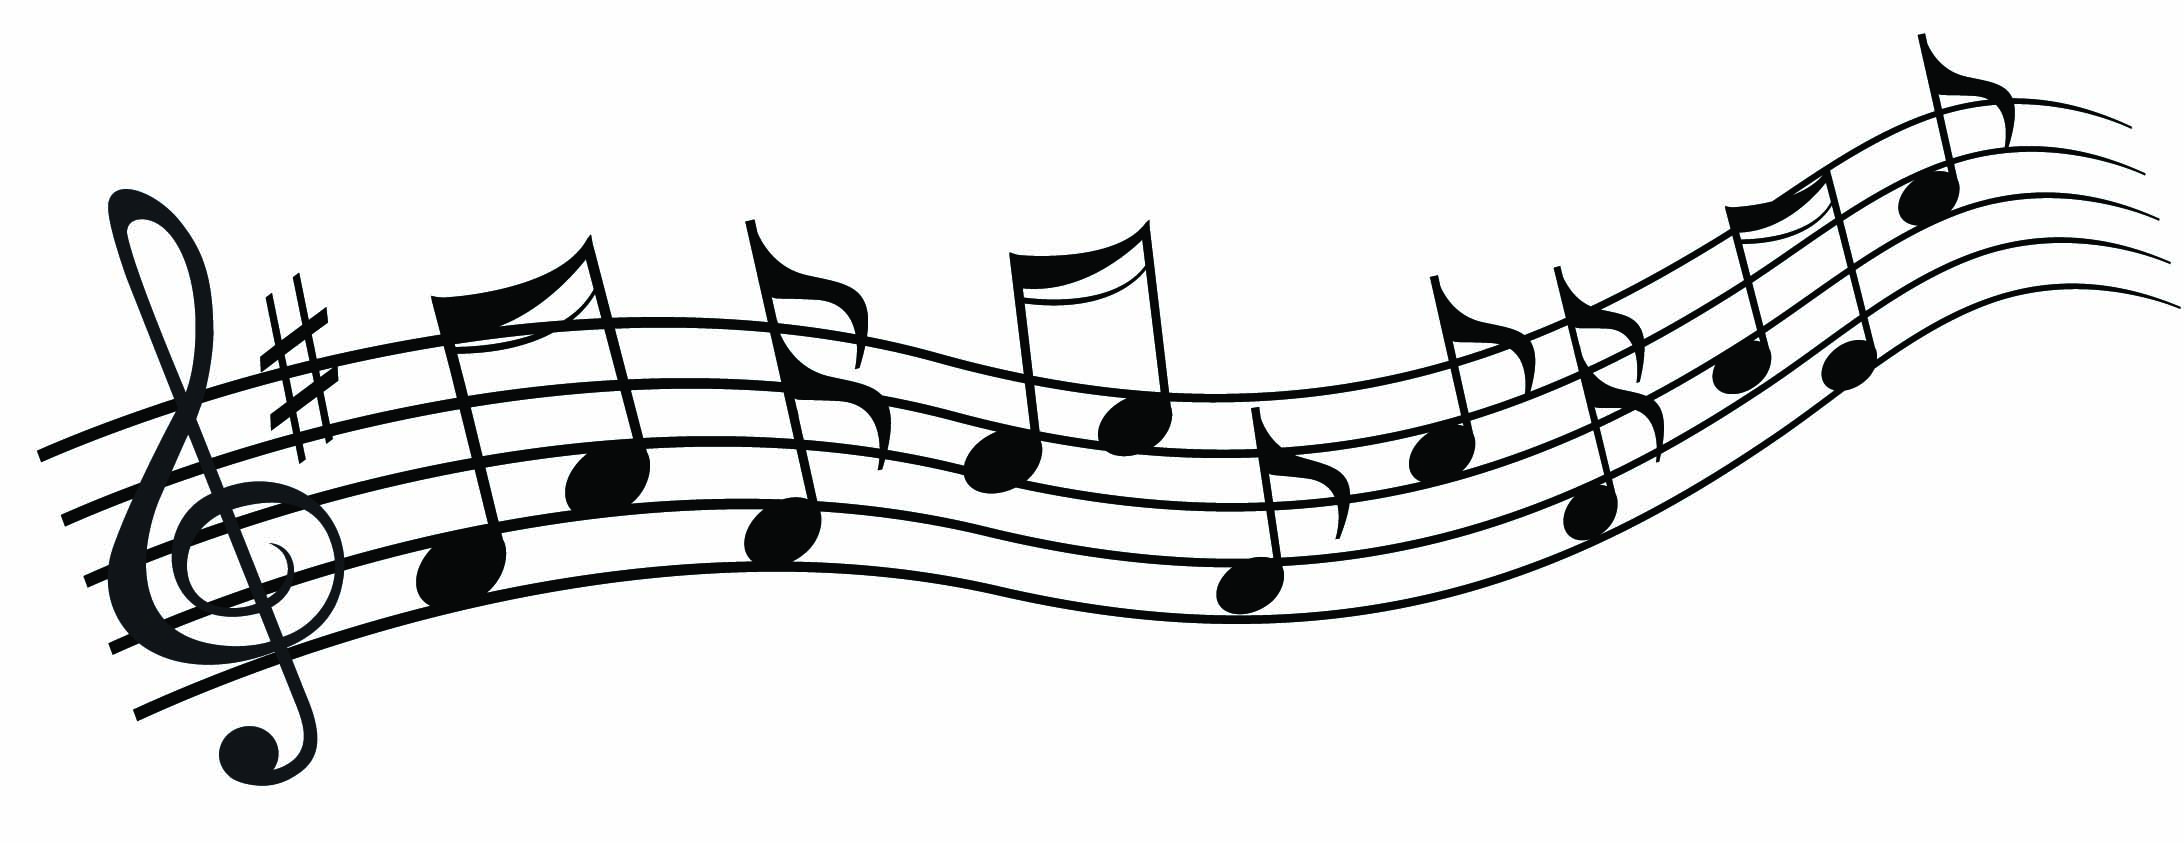 Free Music Images